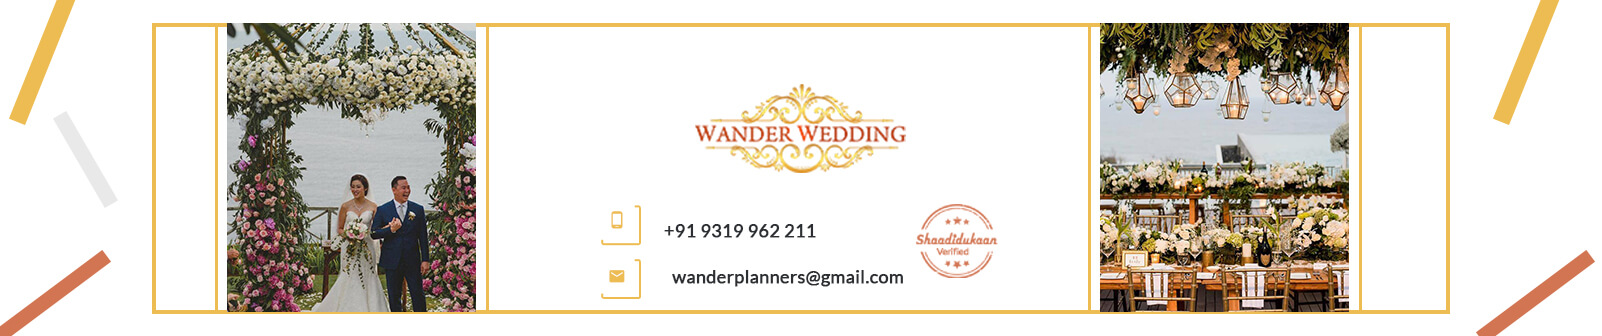 Wander Weddings